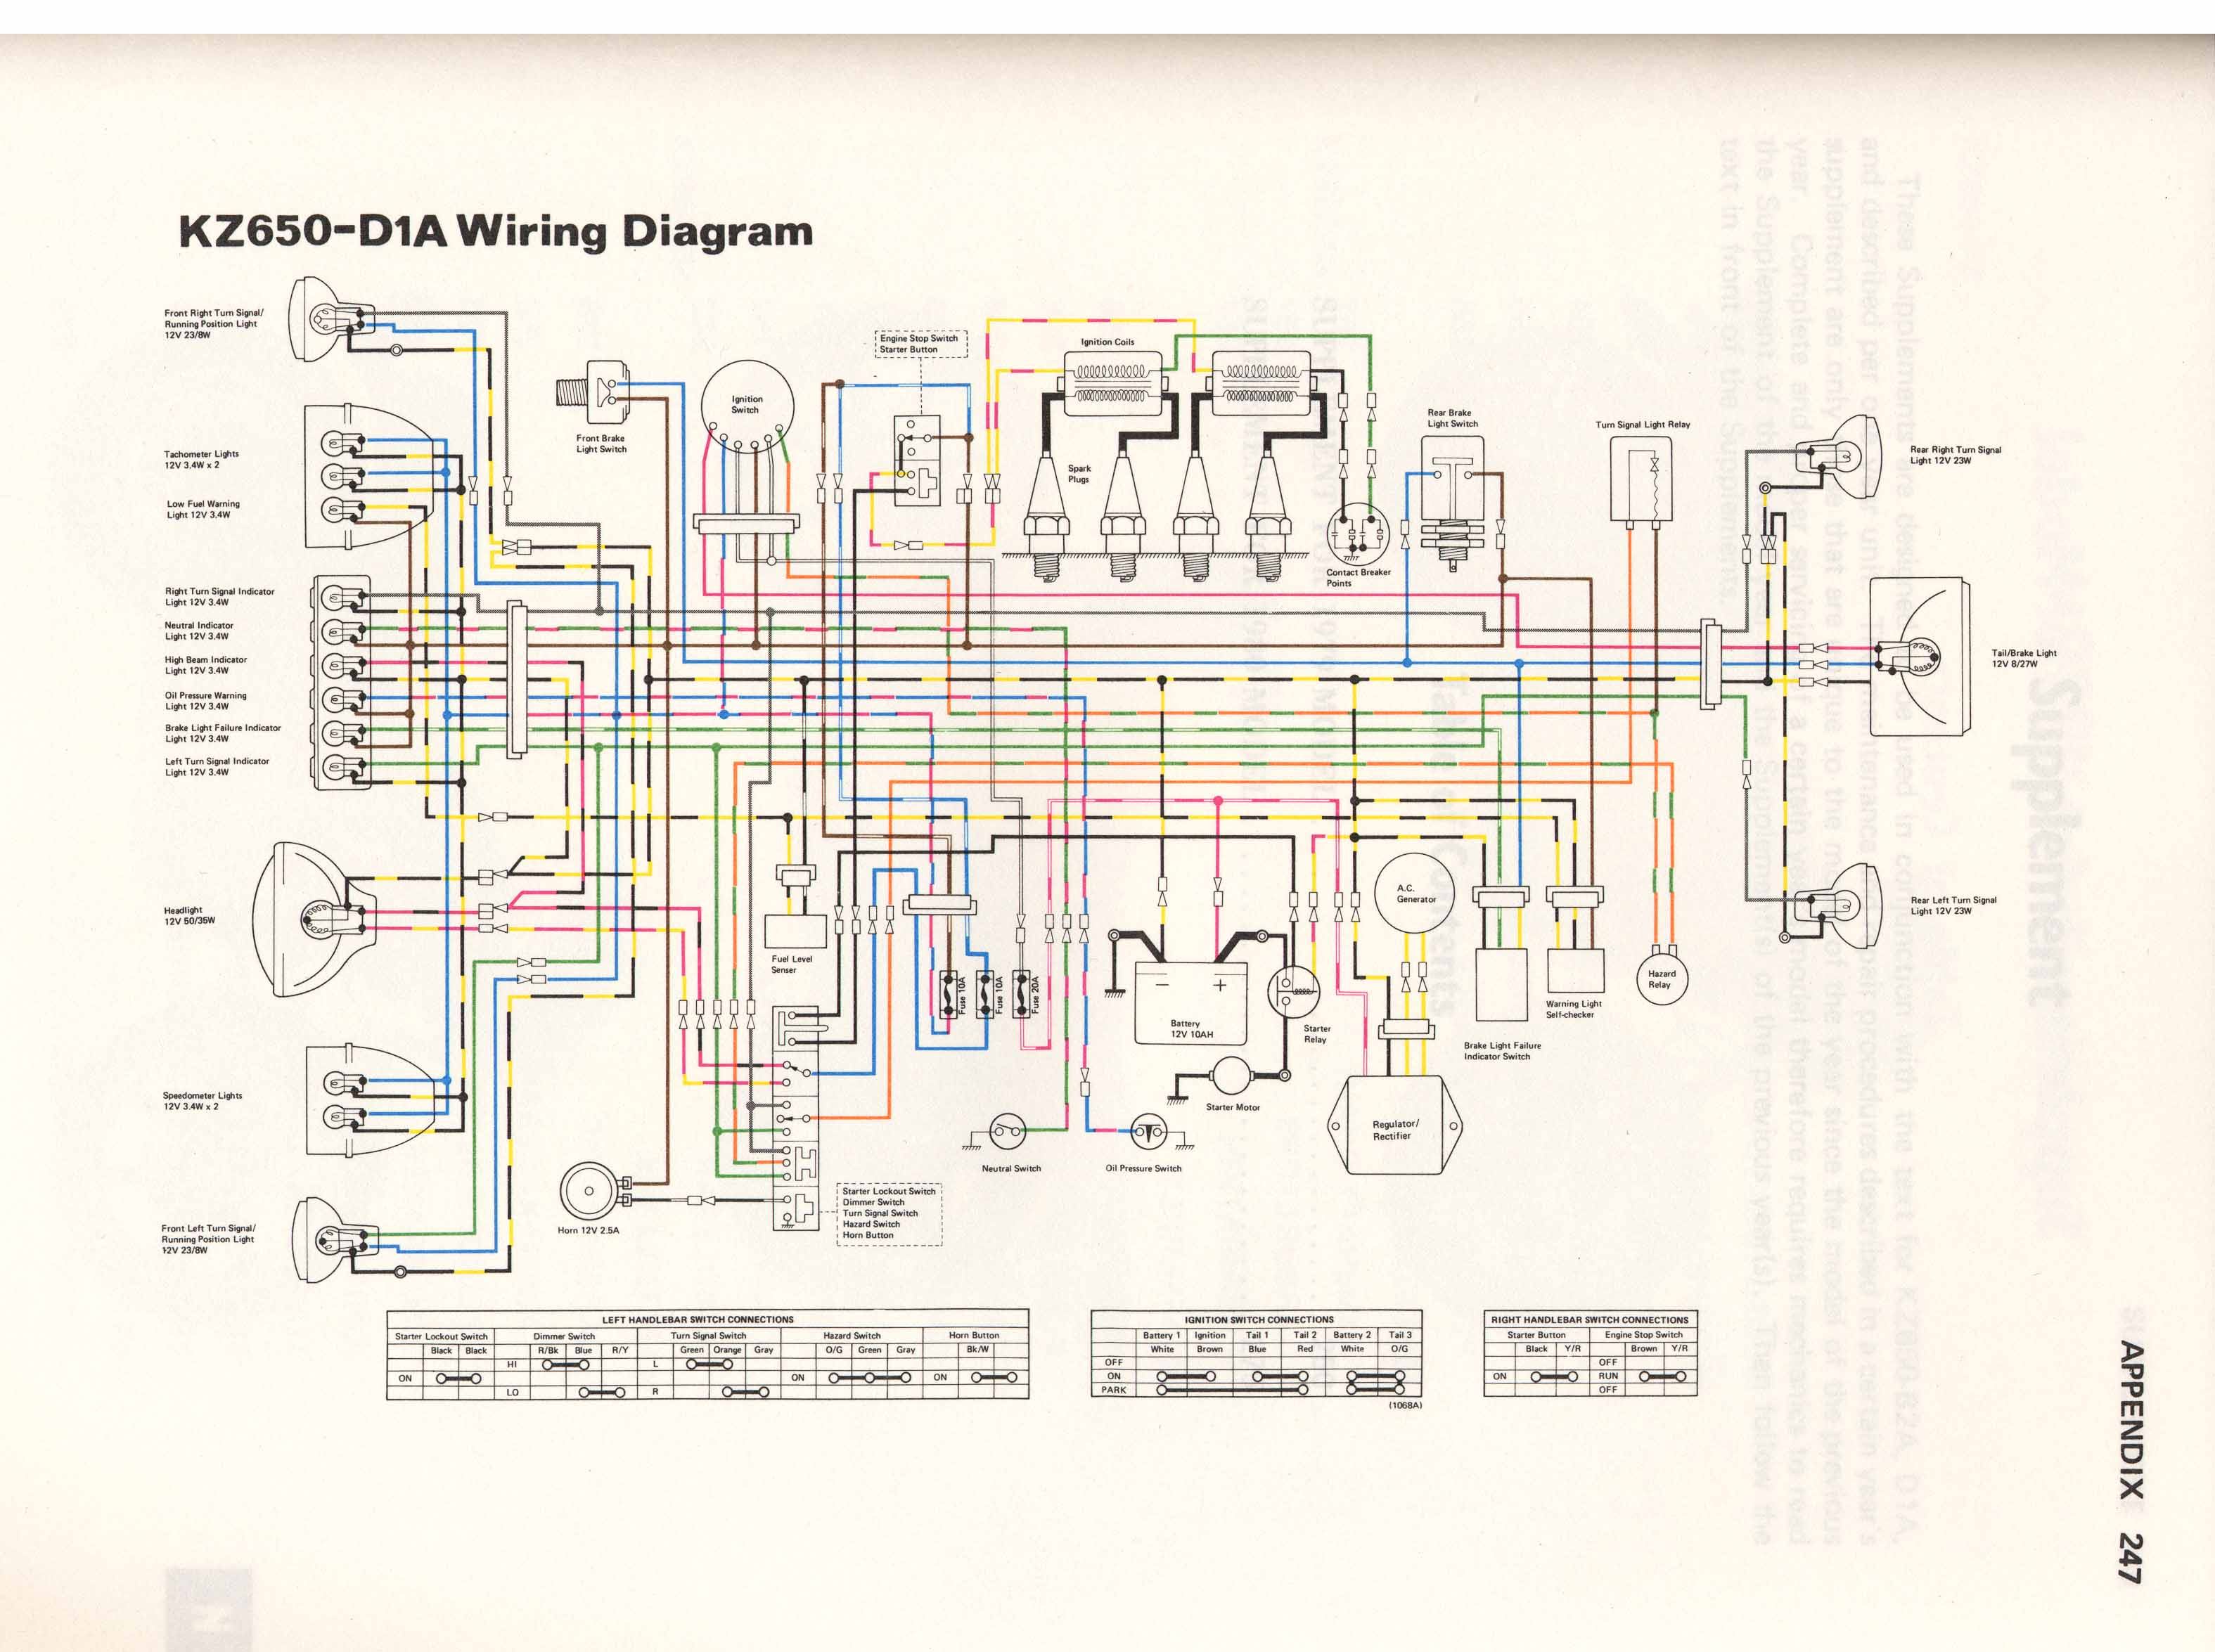 1983 Kawasaki Wiring Diagram Manual Guide. Kz650 Info Wiring Diagrams Rh Kawasaki Mule Diagram 1983 Gpz. Wiring. 1994 Klr 650 Wiring Schematic At Scoala.co